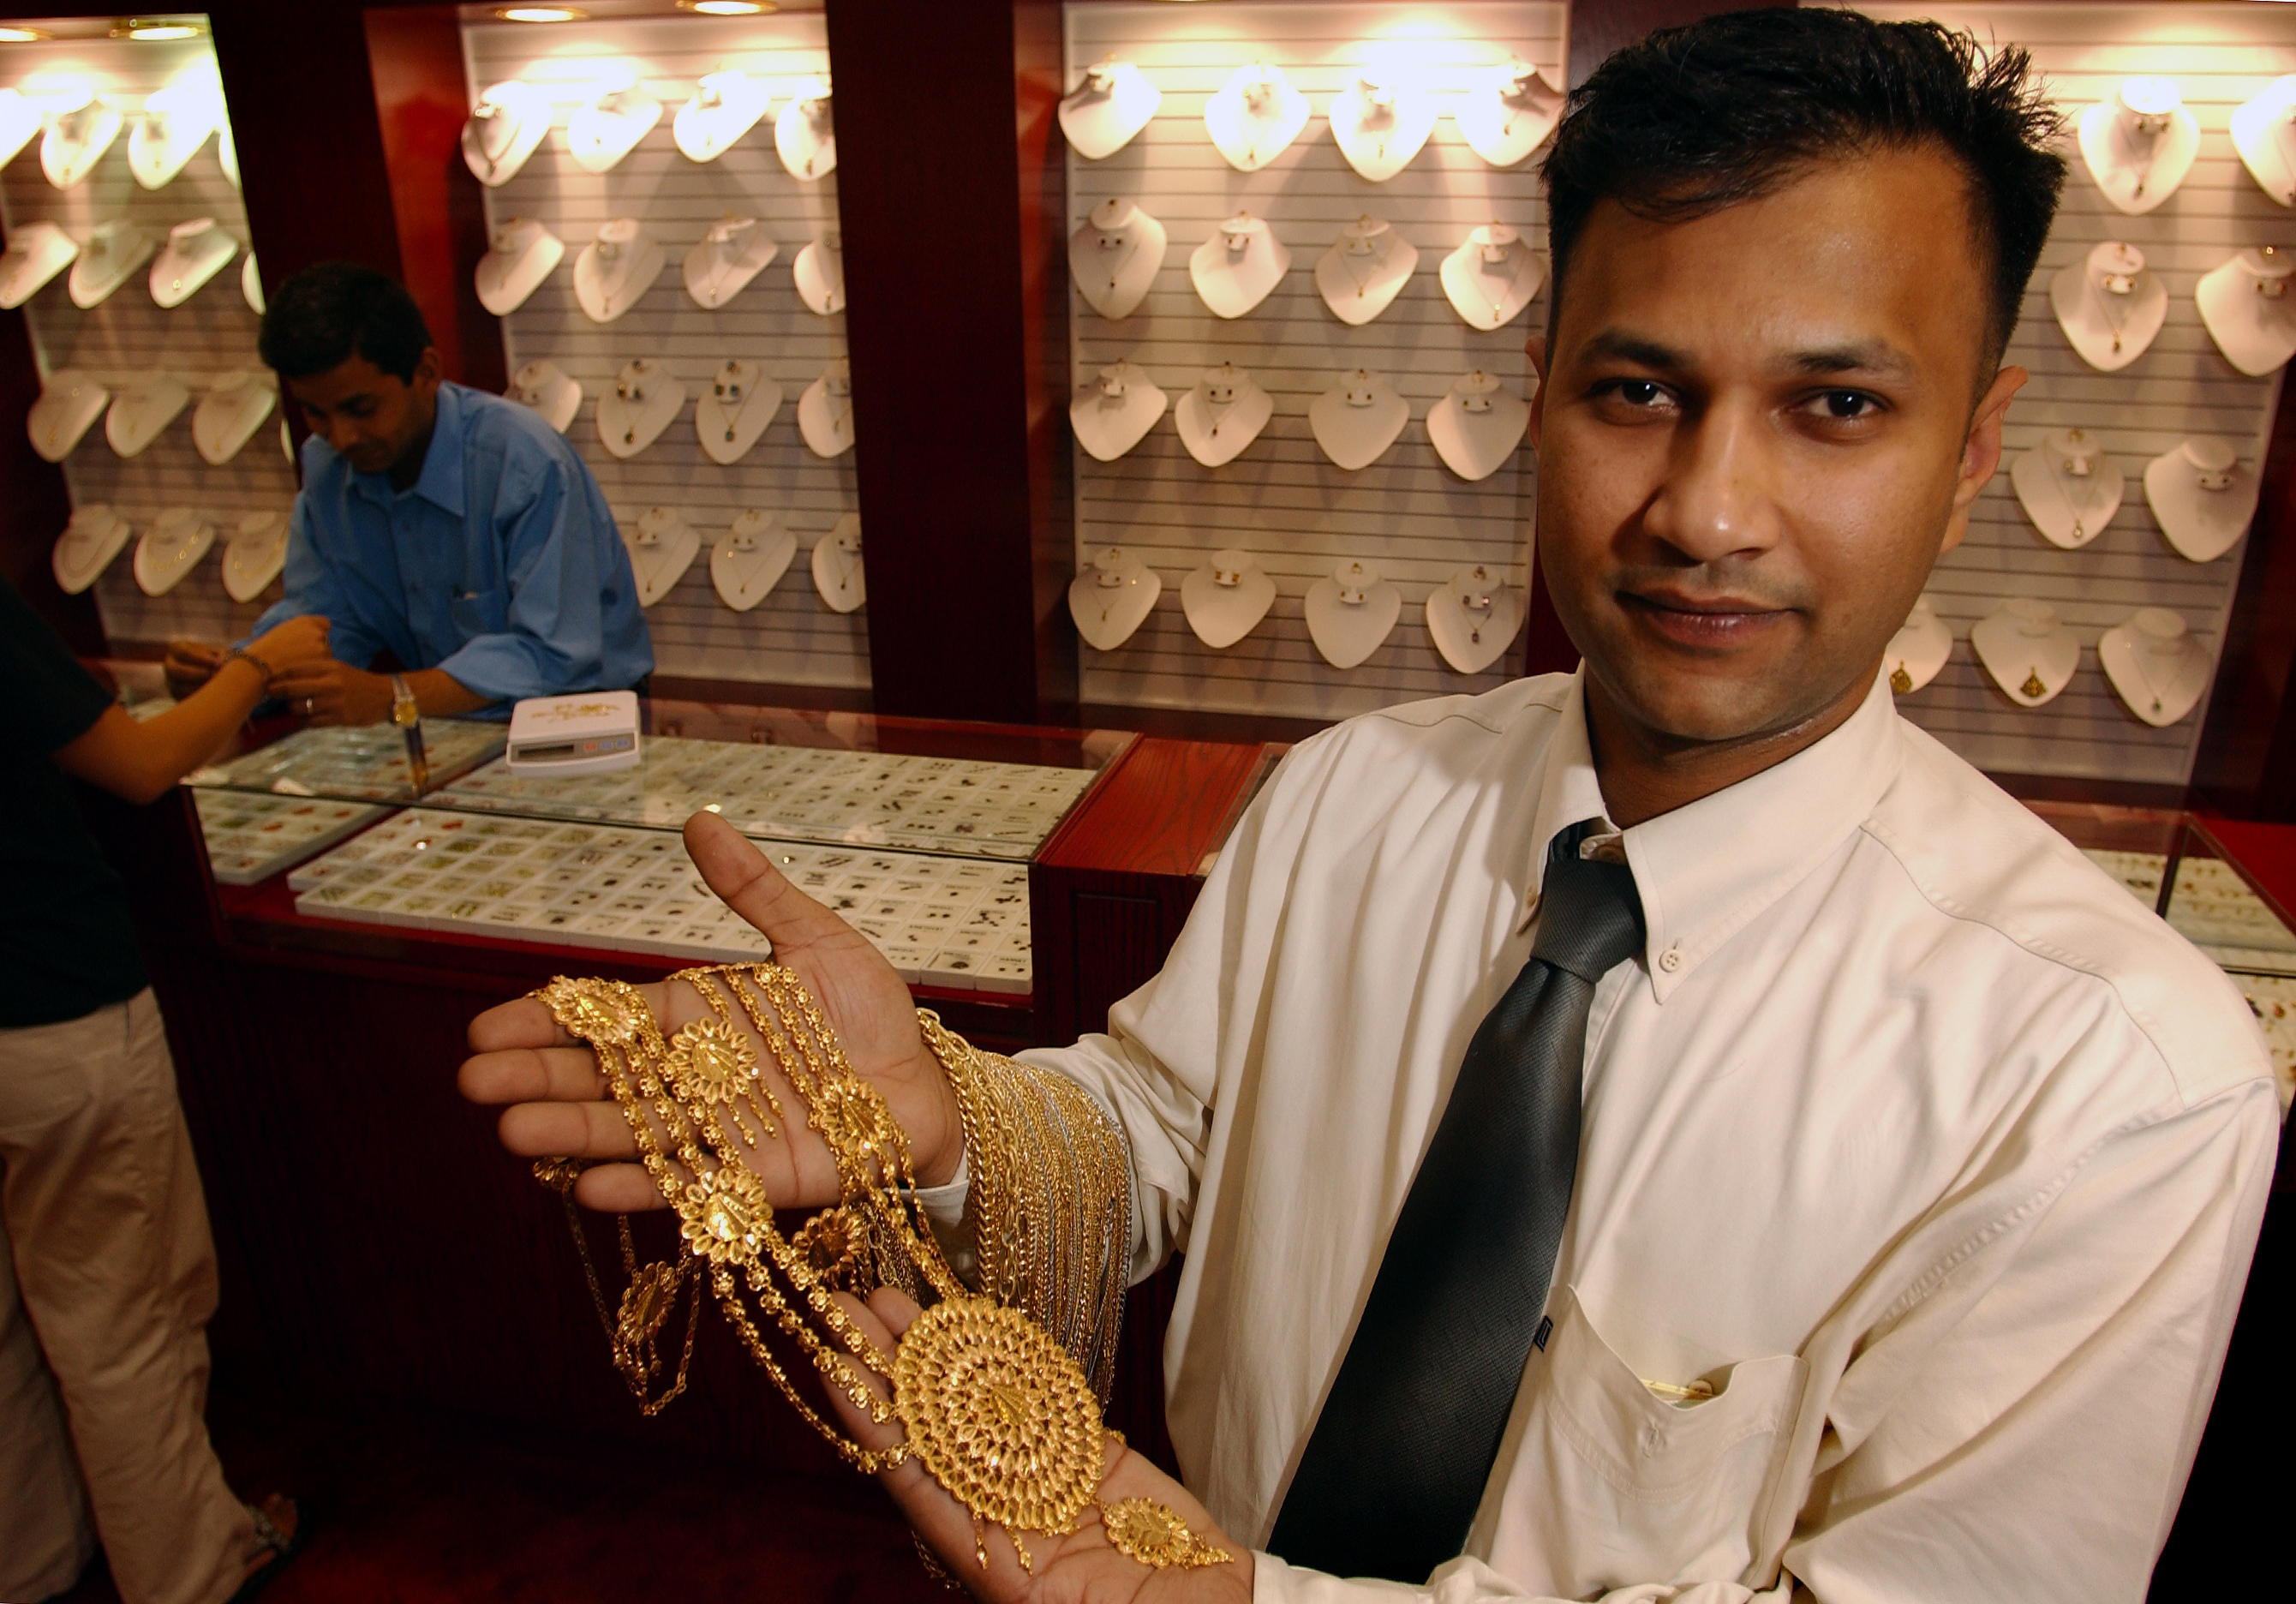 File:Bahrain jeweler.jpg - Wikimedia Commons